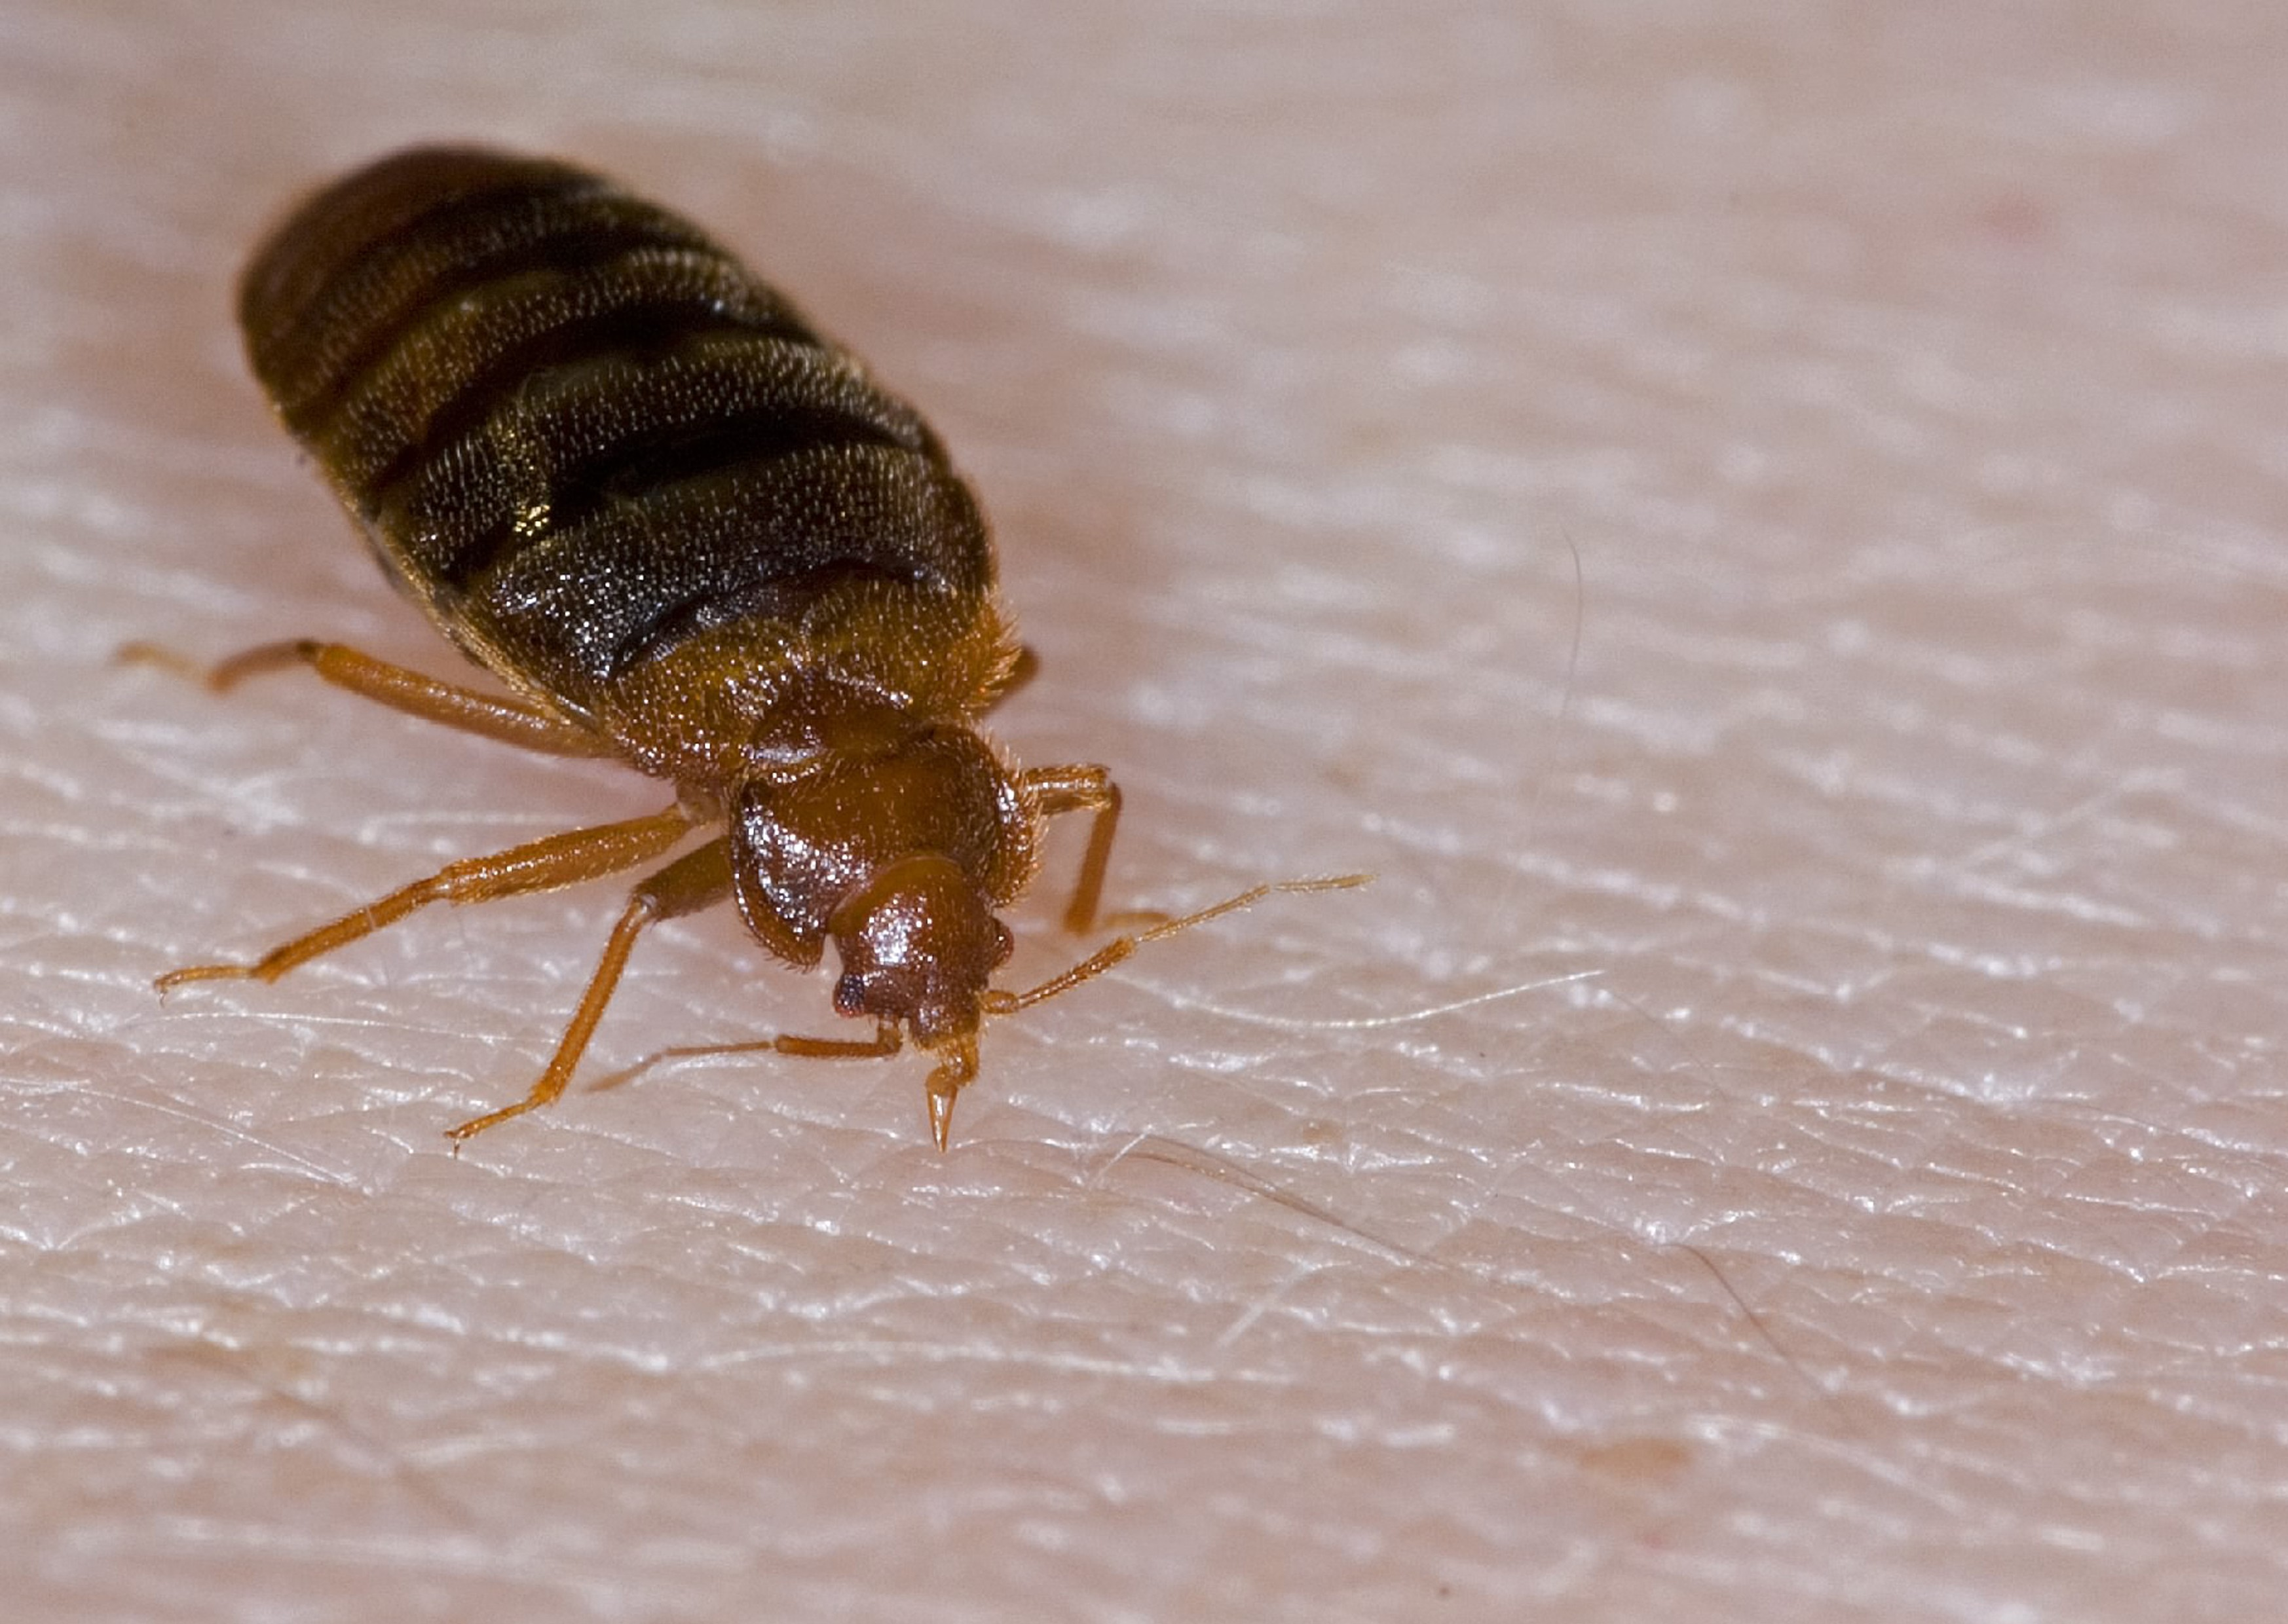 A Bed Bug: Can A Bed Bug Get In Your Hair